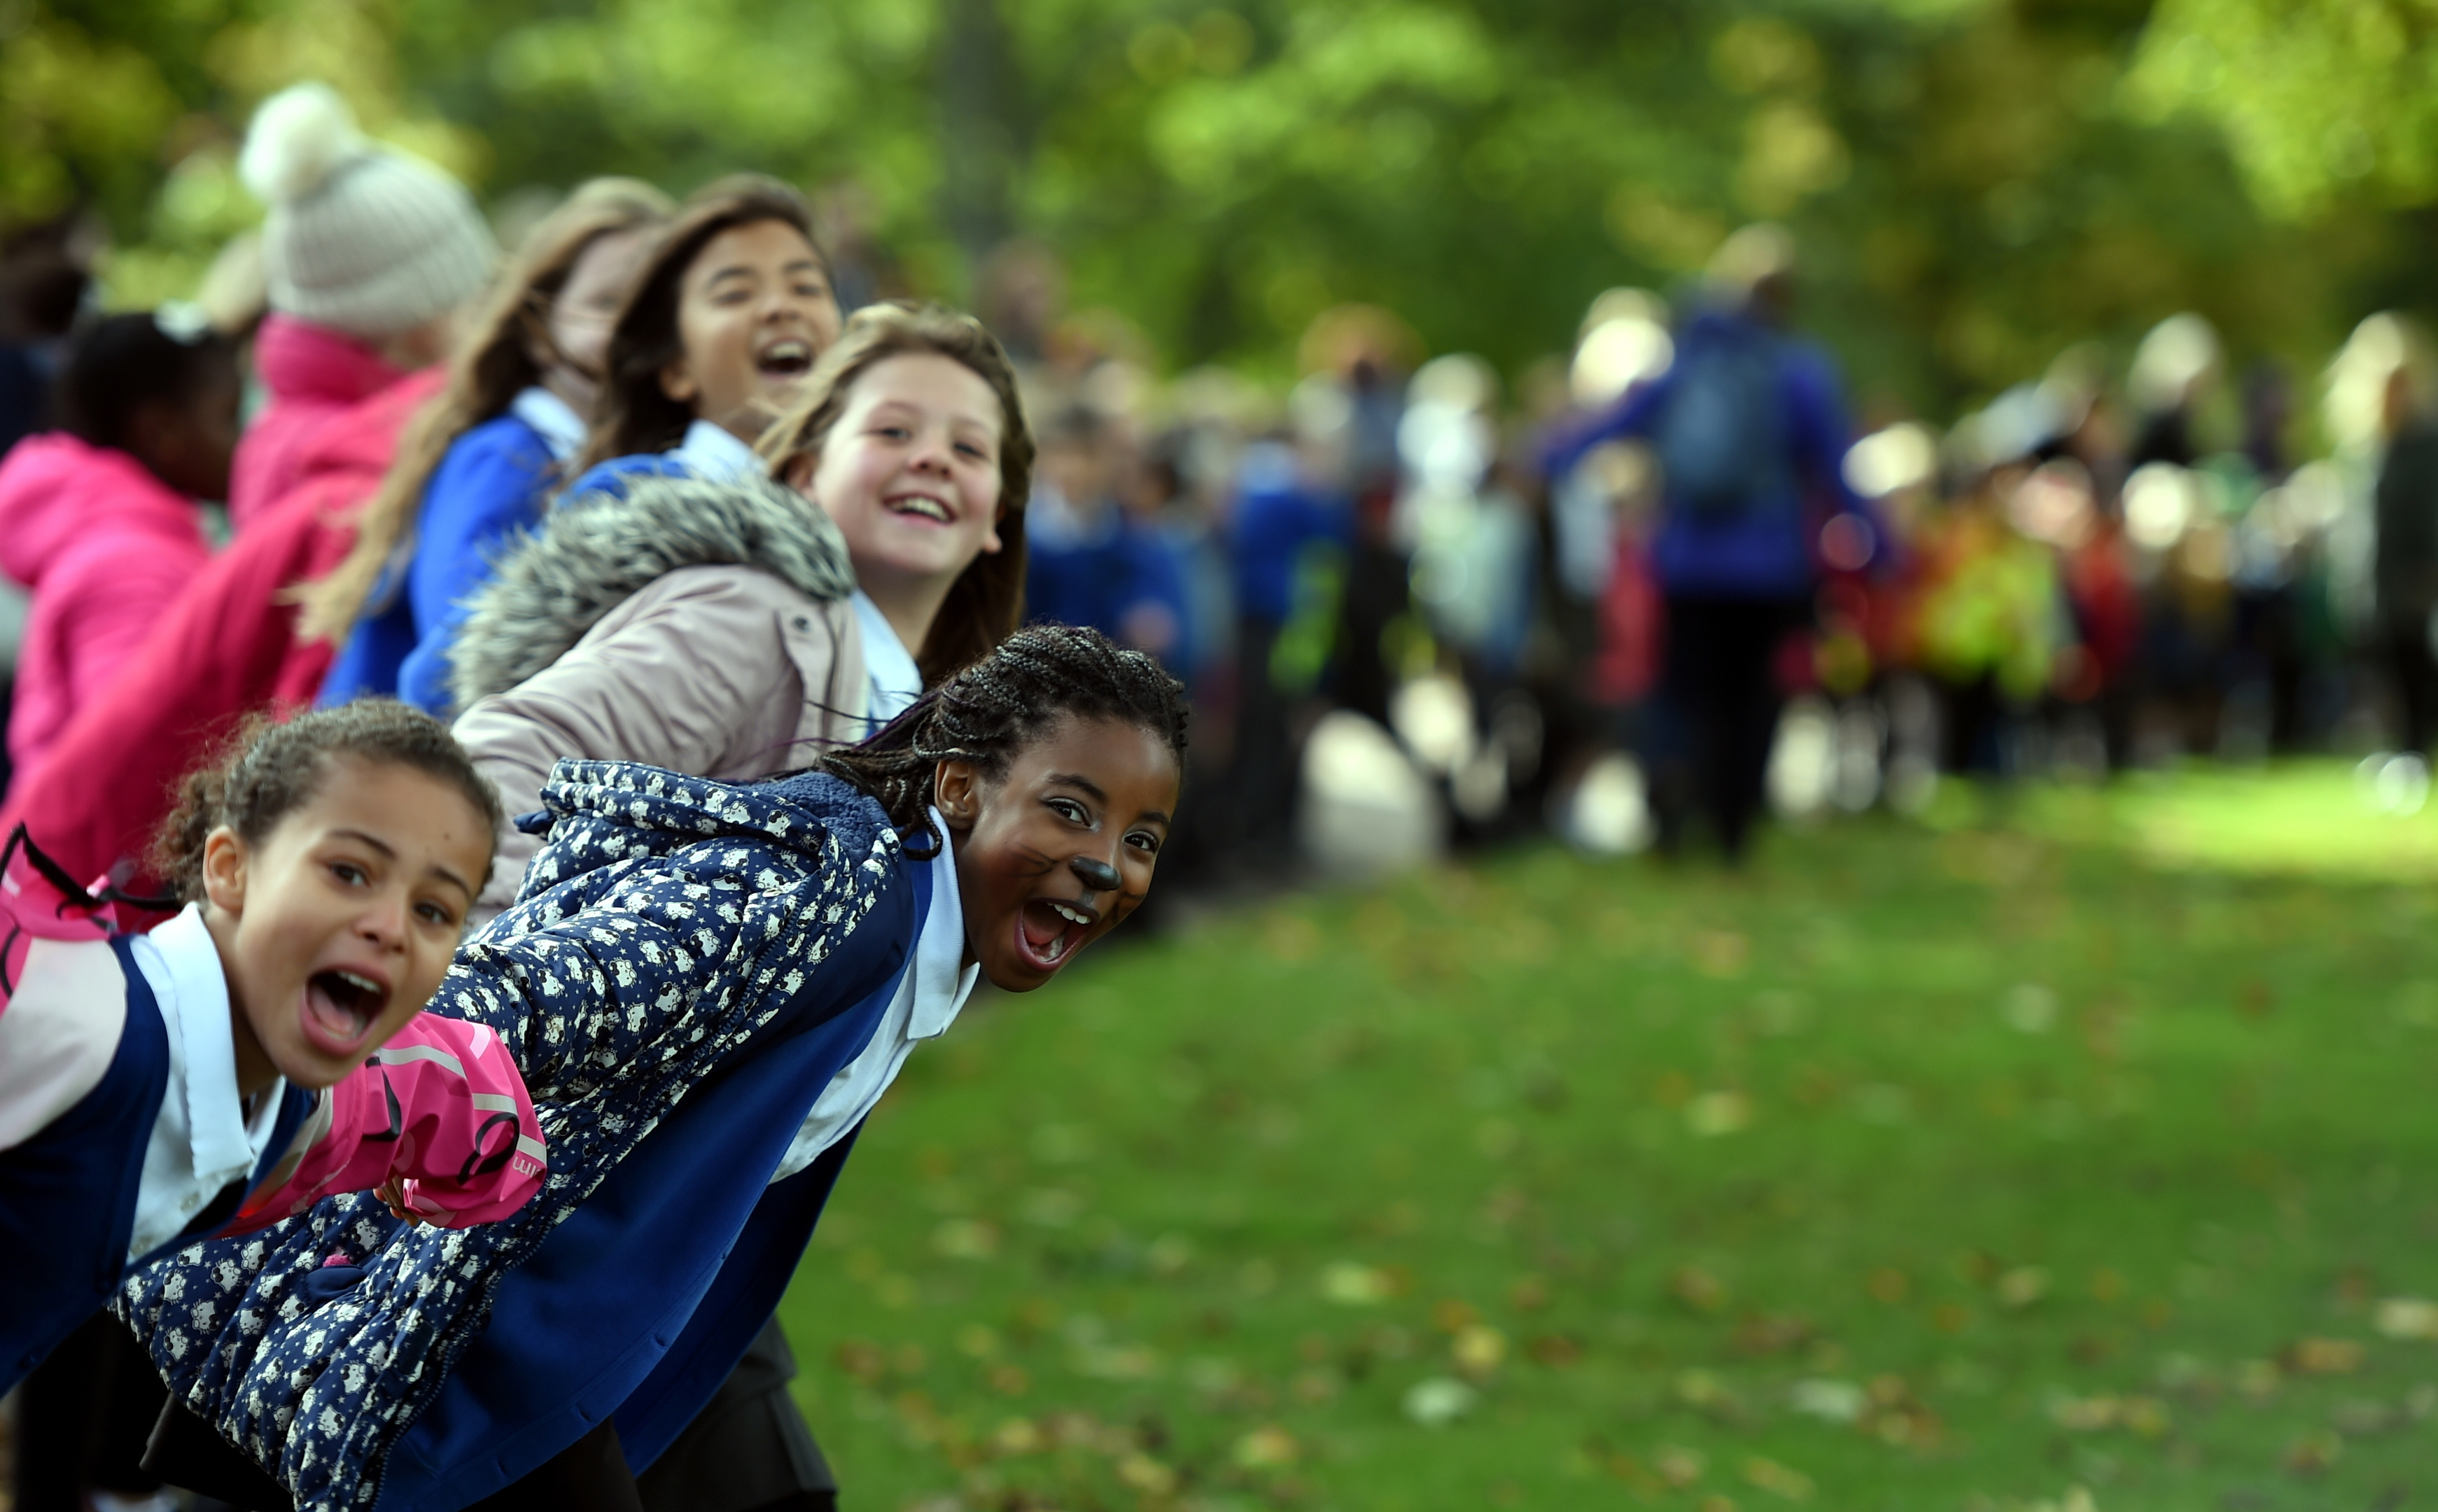 The youngsters of Ferryhill Primary School making a human chain for the Anchor Unit charity at Duthie Park, Aberdeen.  Pictures by Jim Irvine